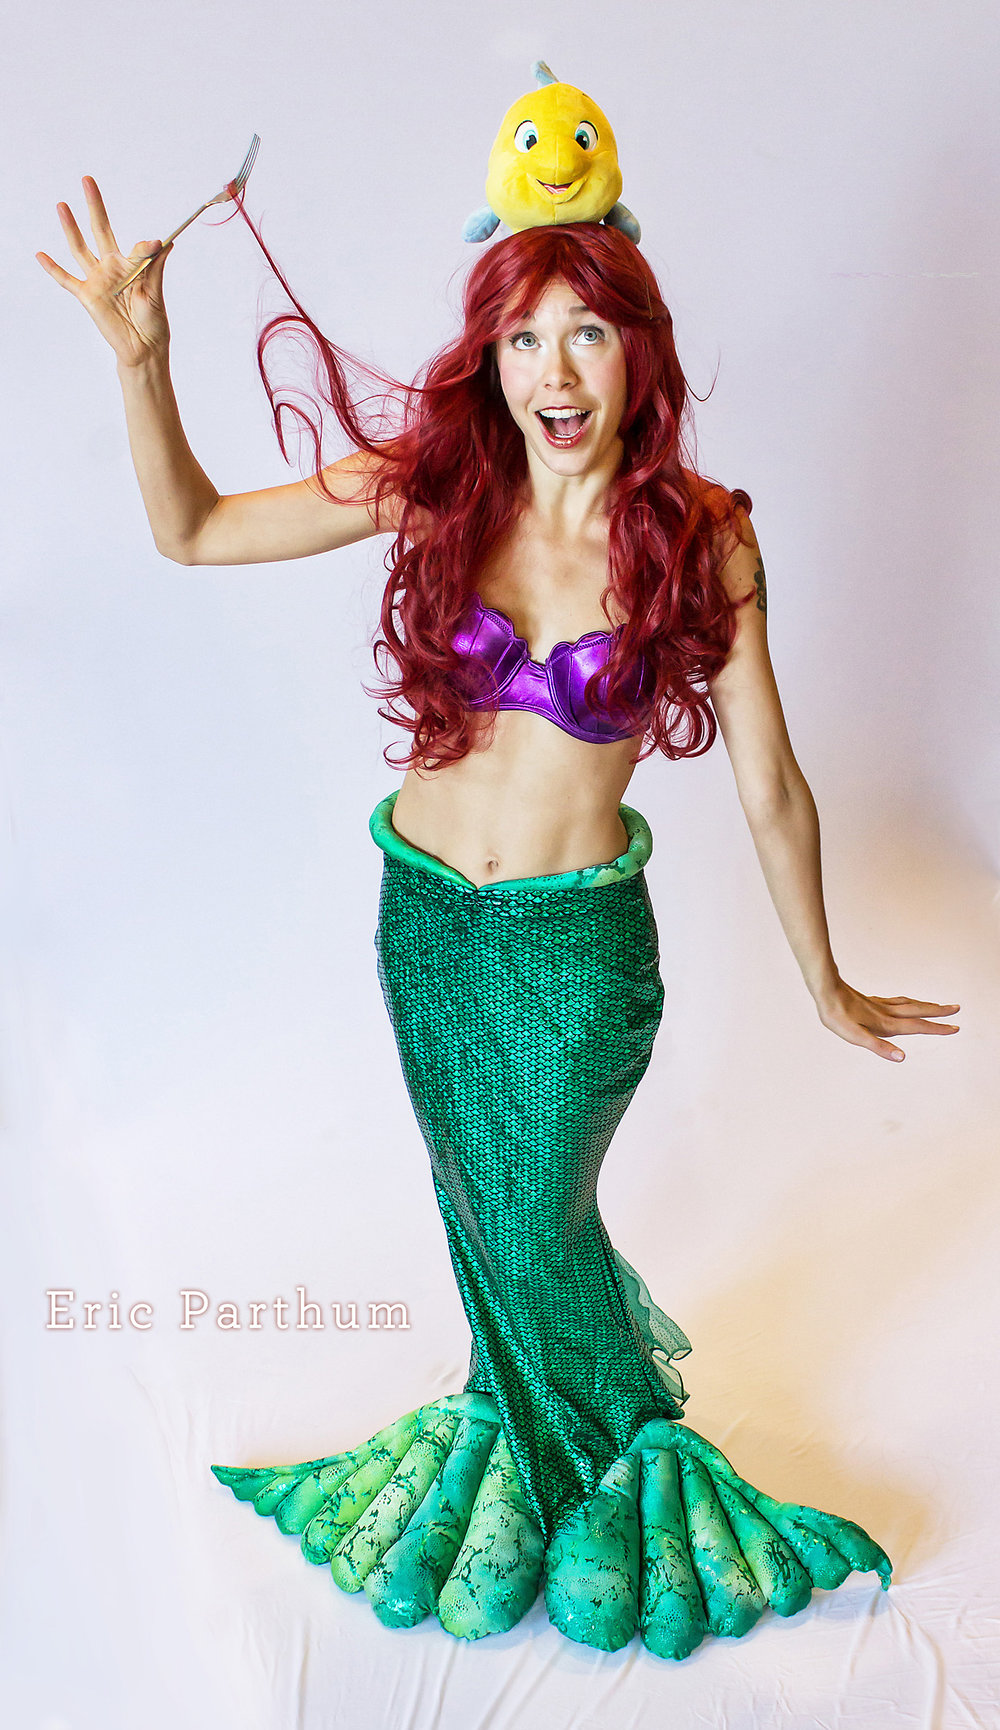 IMG_3201 FINAL small (Mermaid, Ariel).jpg